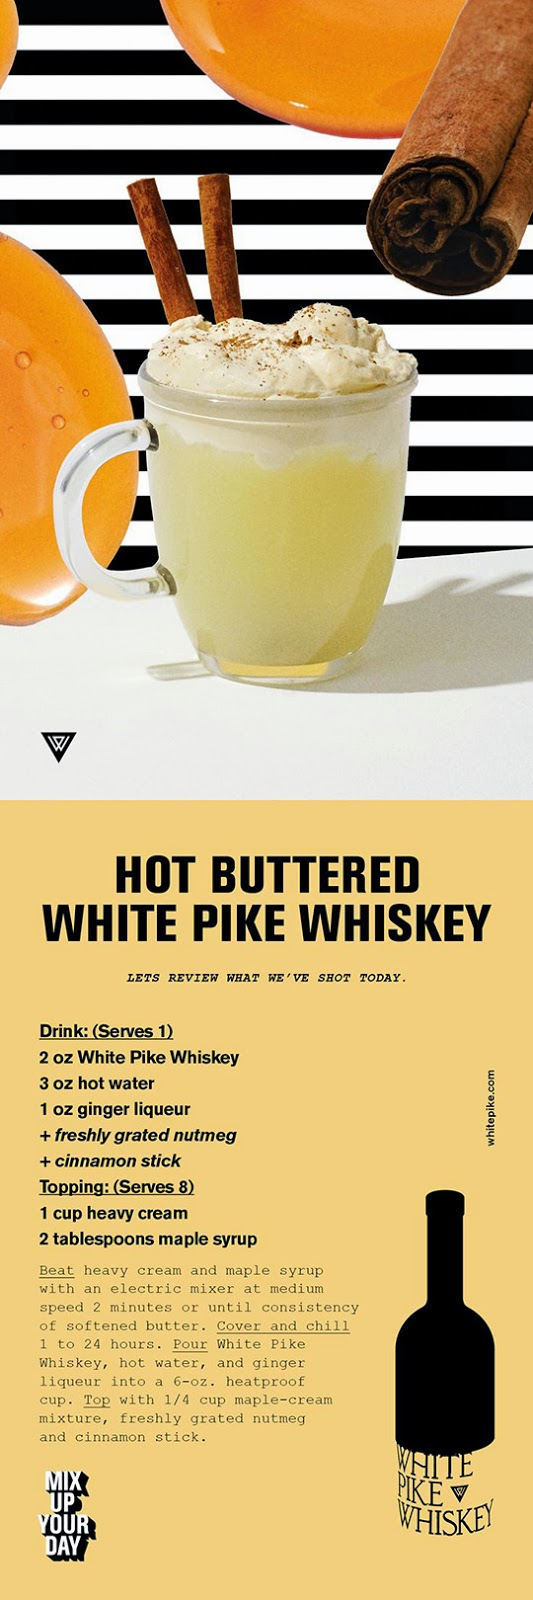 White Pike Hot Buttered White Whiskey Recipe Card